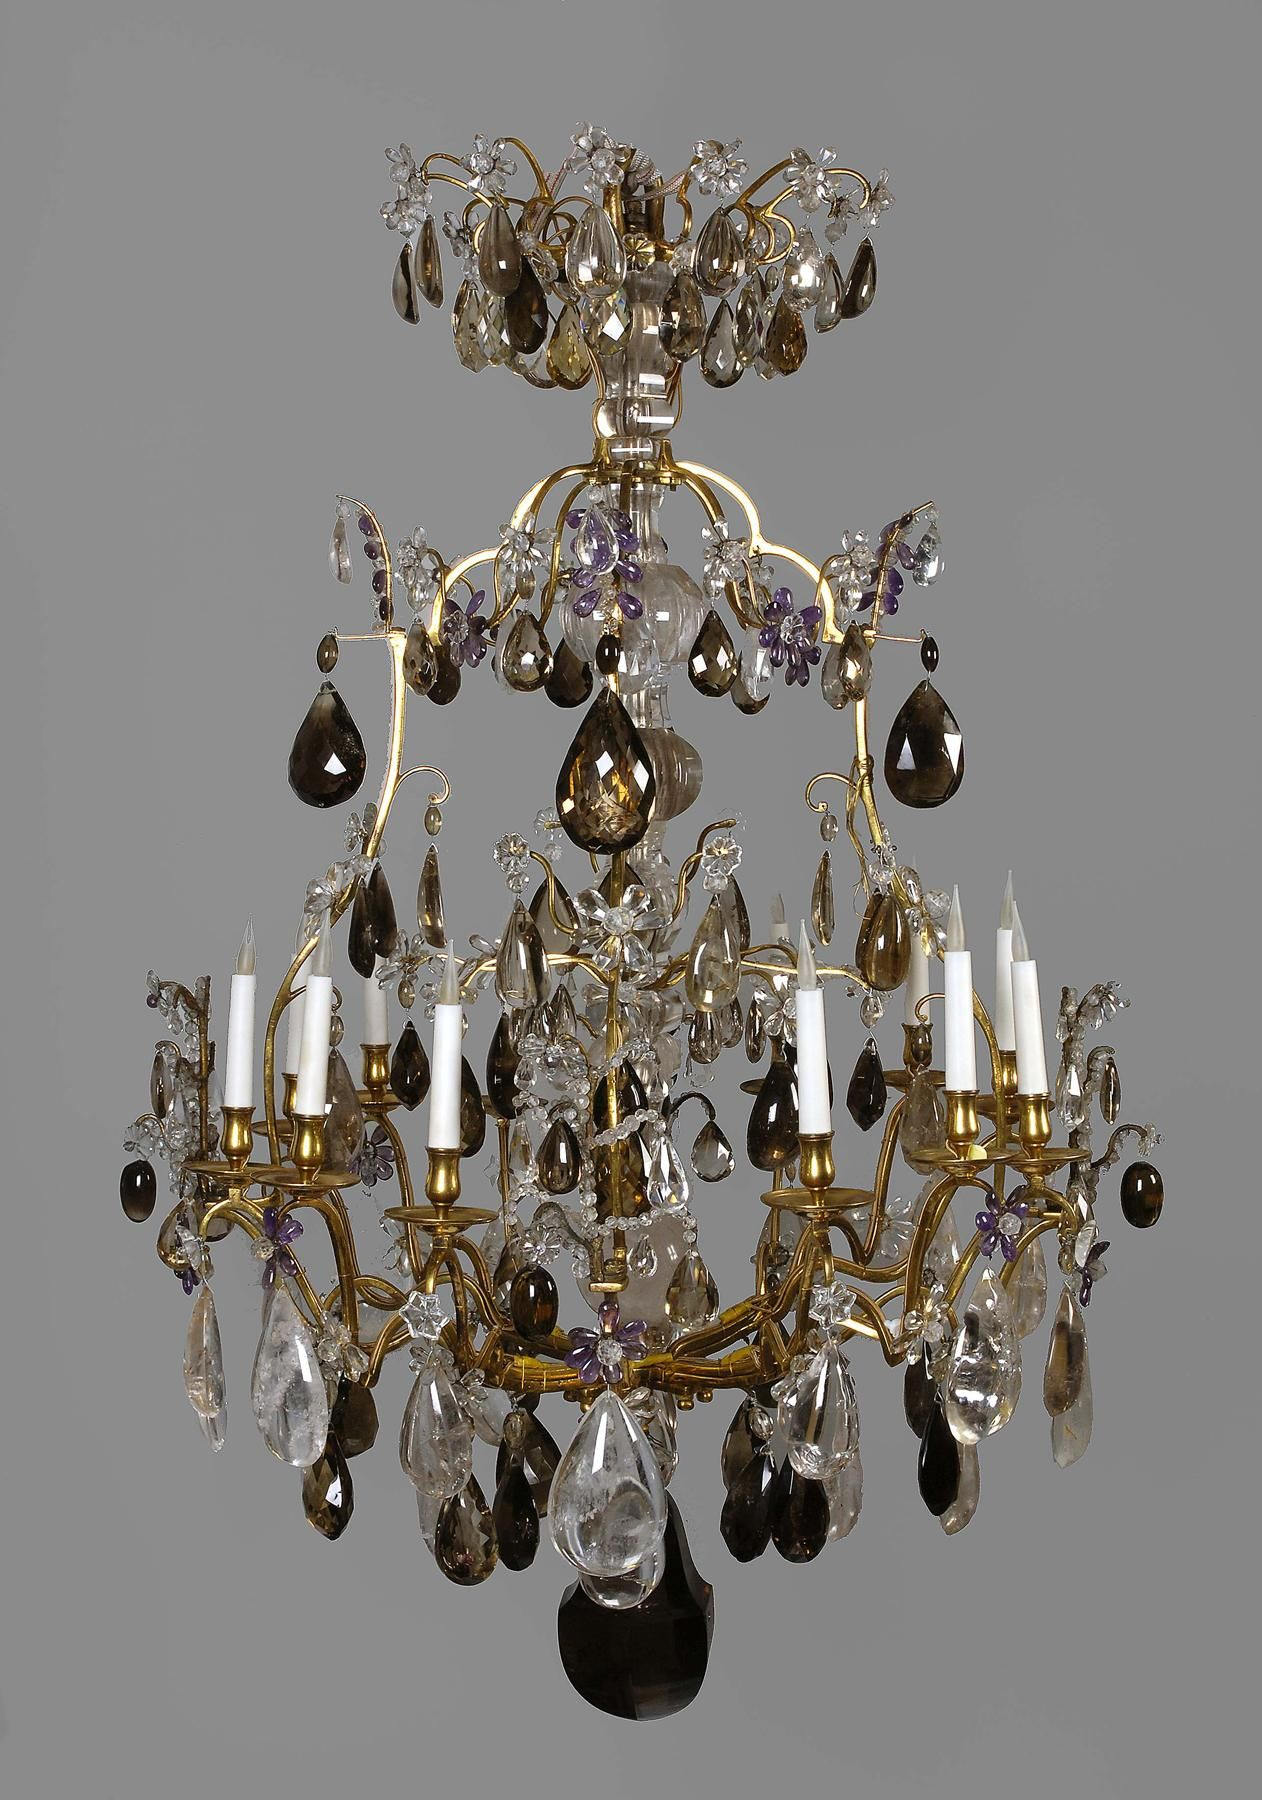 A French Ormolu Rock Crystal Twelve Light Chandelier France Louis Xv Period First Half 18th Century